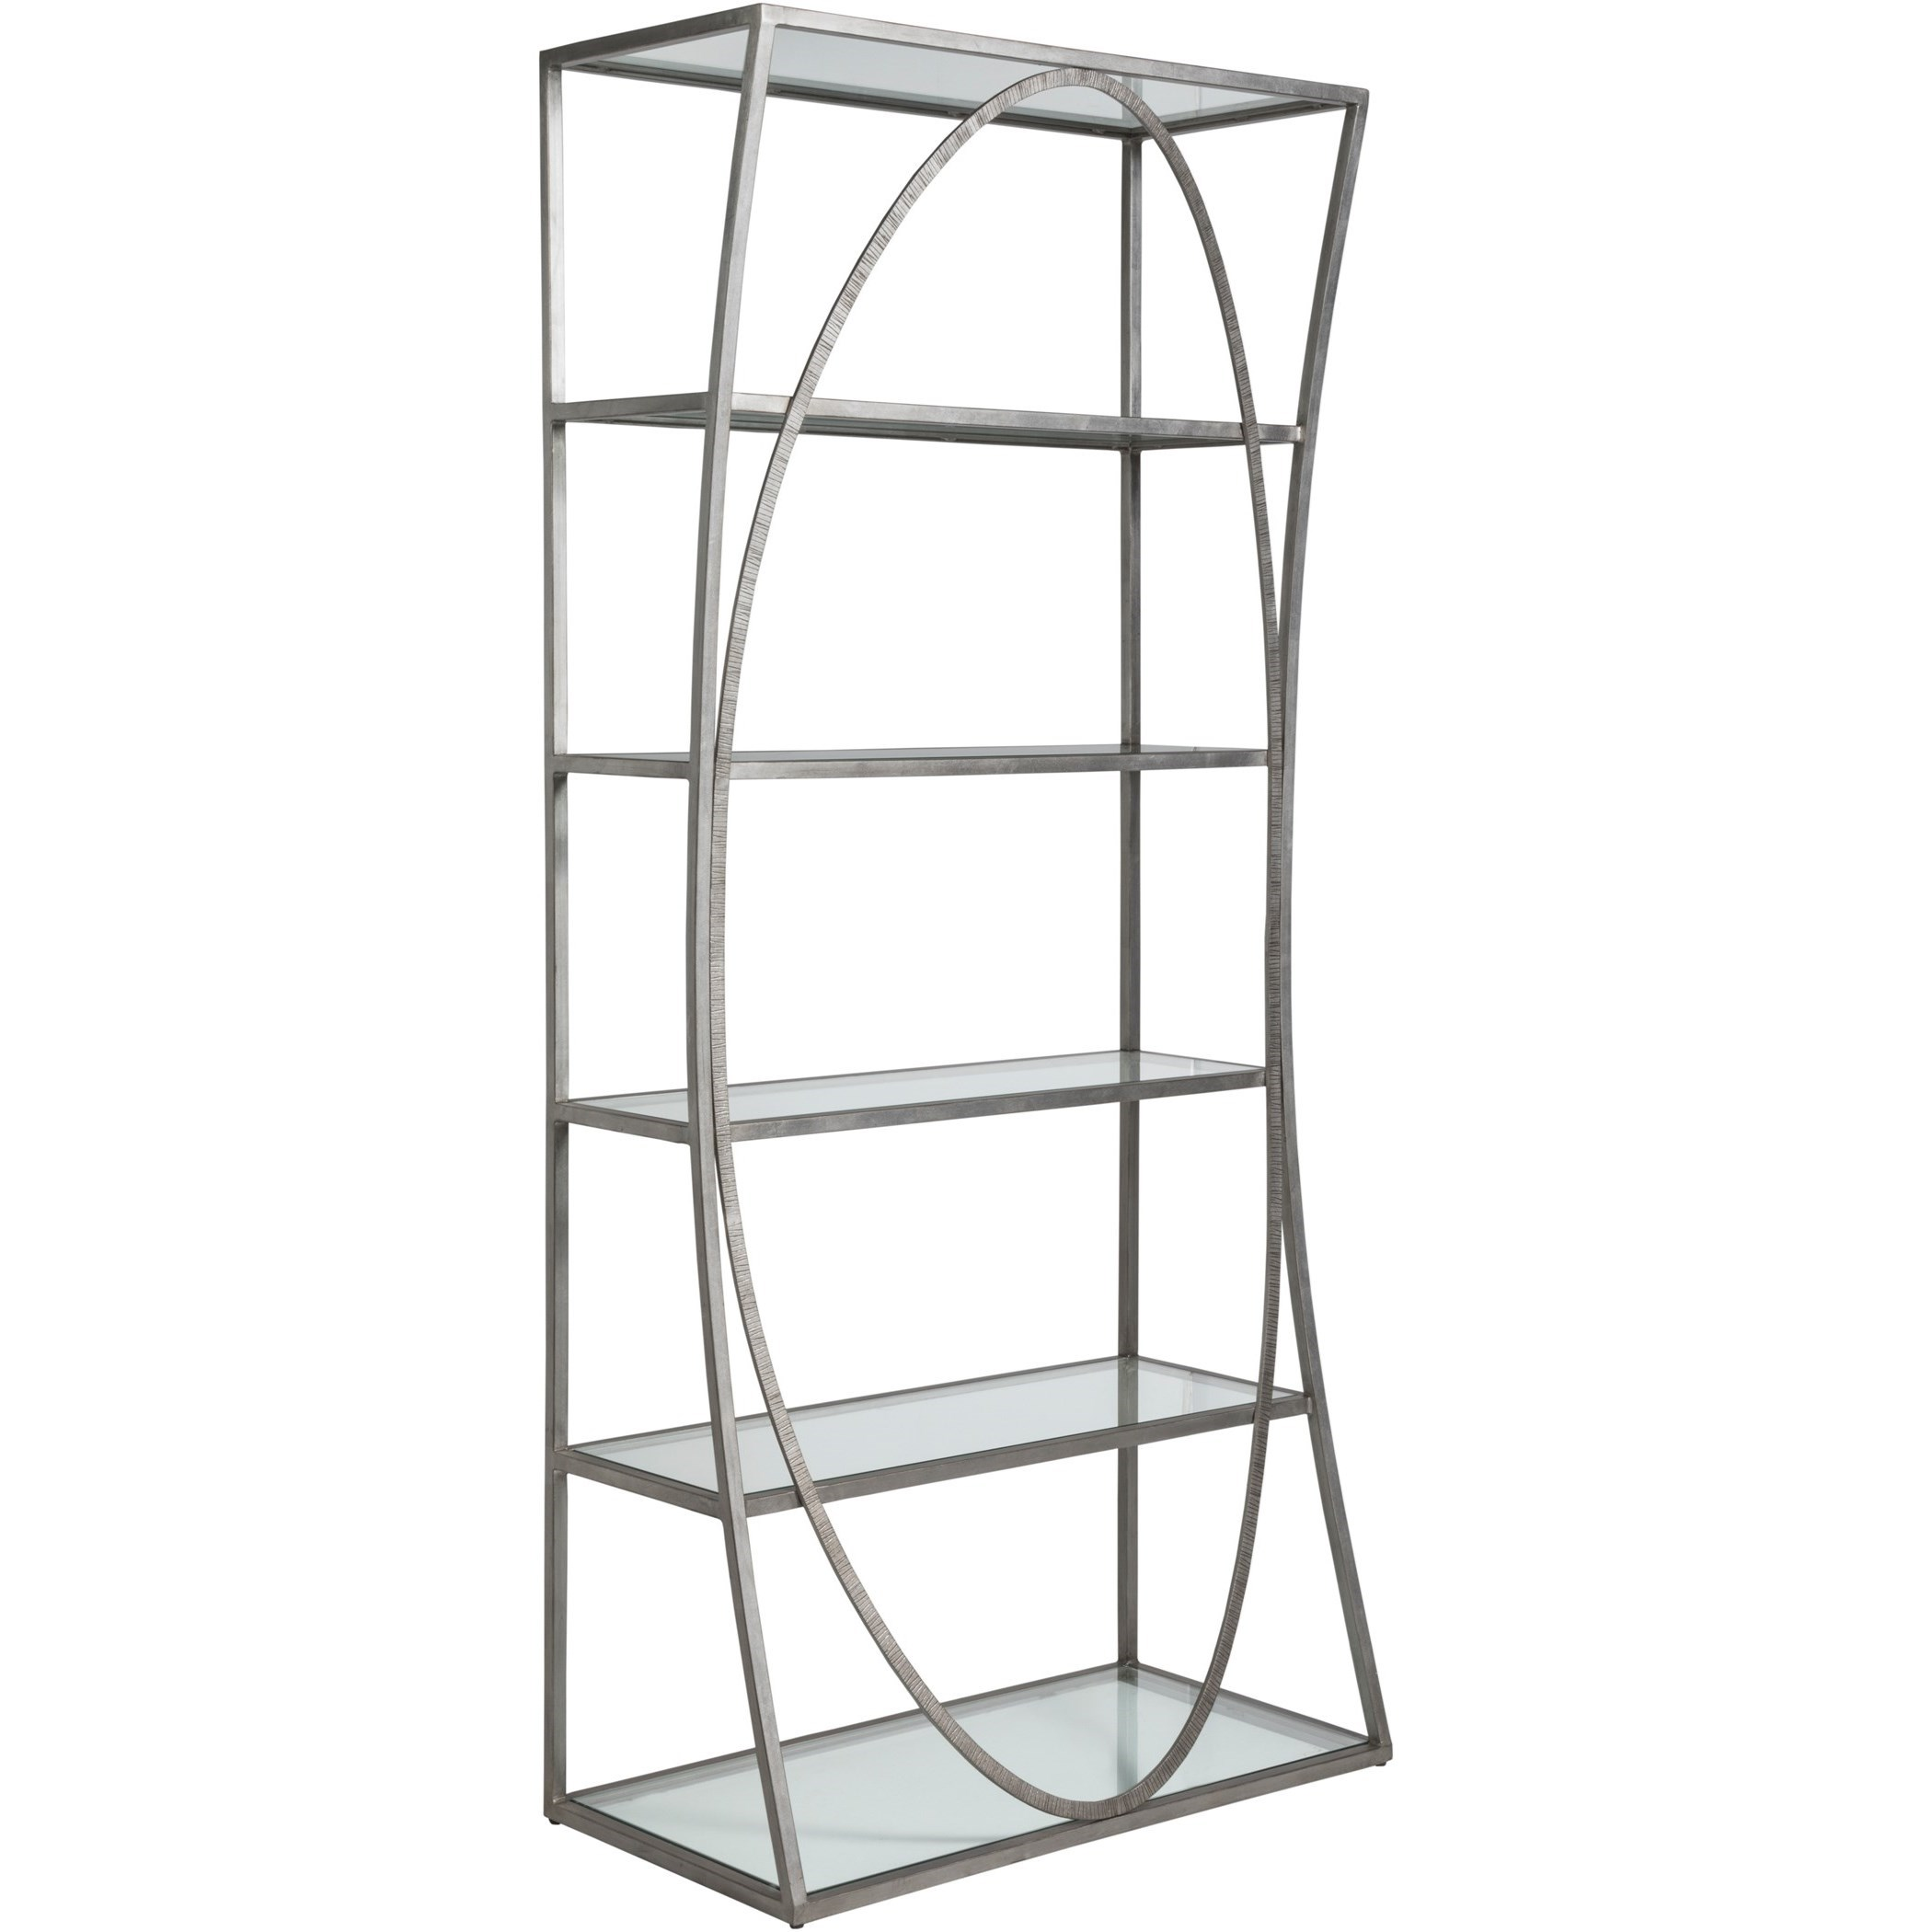 Metal Designs Ellipse Etagere by Artistica at Baer's Furniture